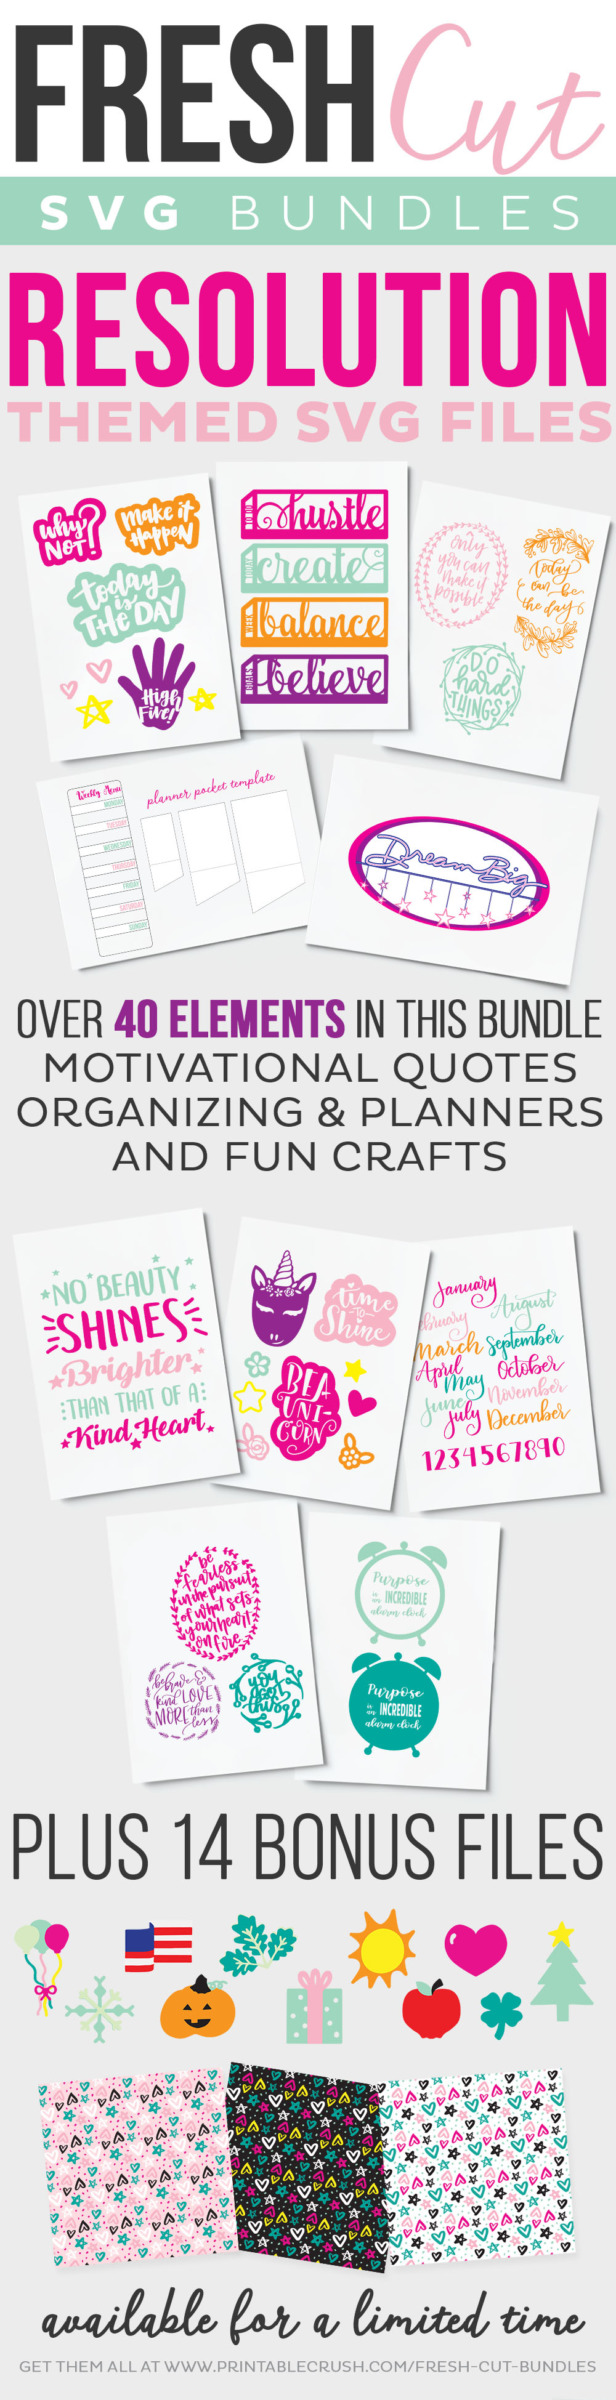 Love these SVG files! All those handlettered inspirational quotes and planner elements. perfect for the new year!